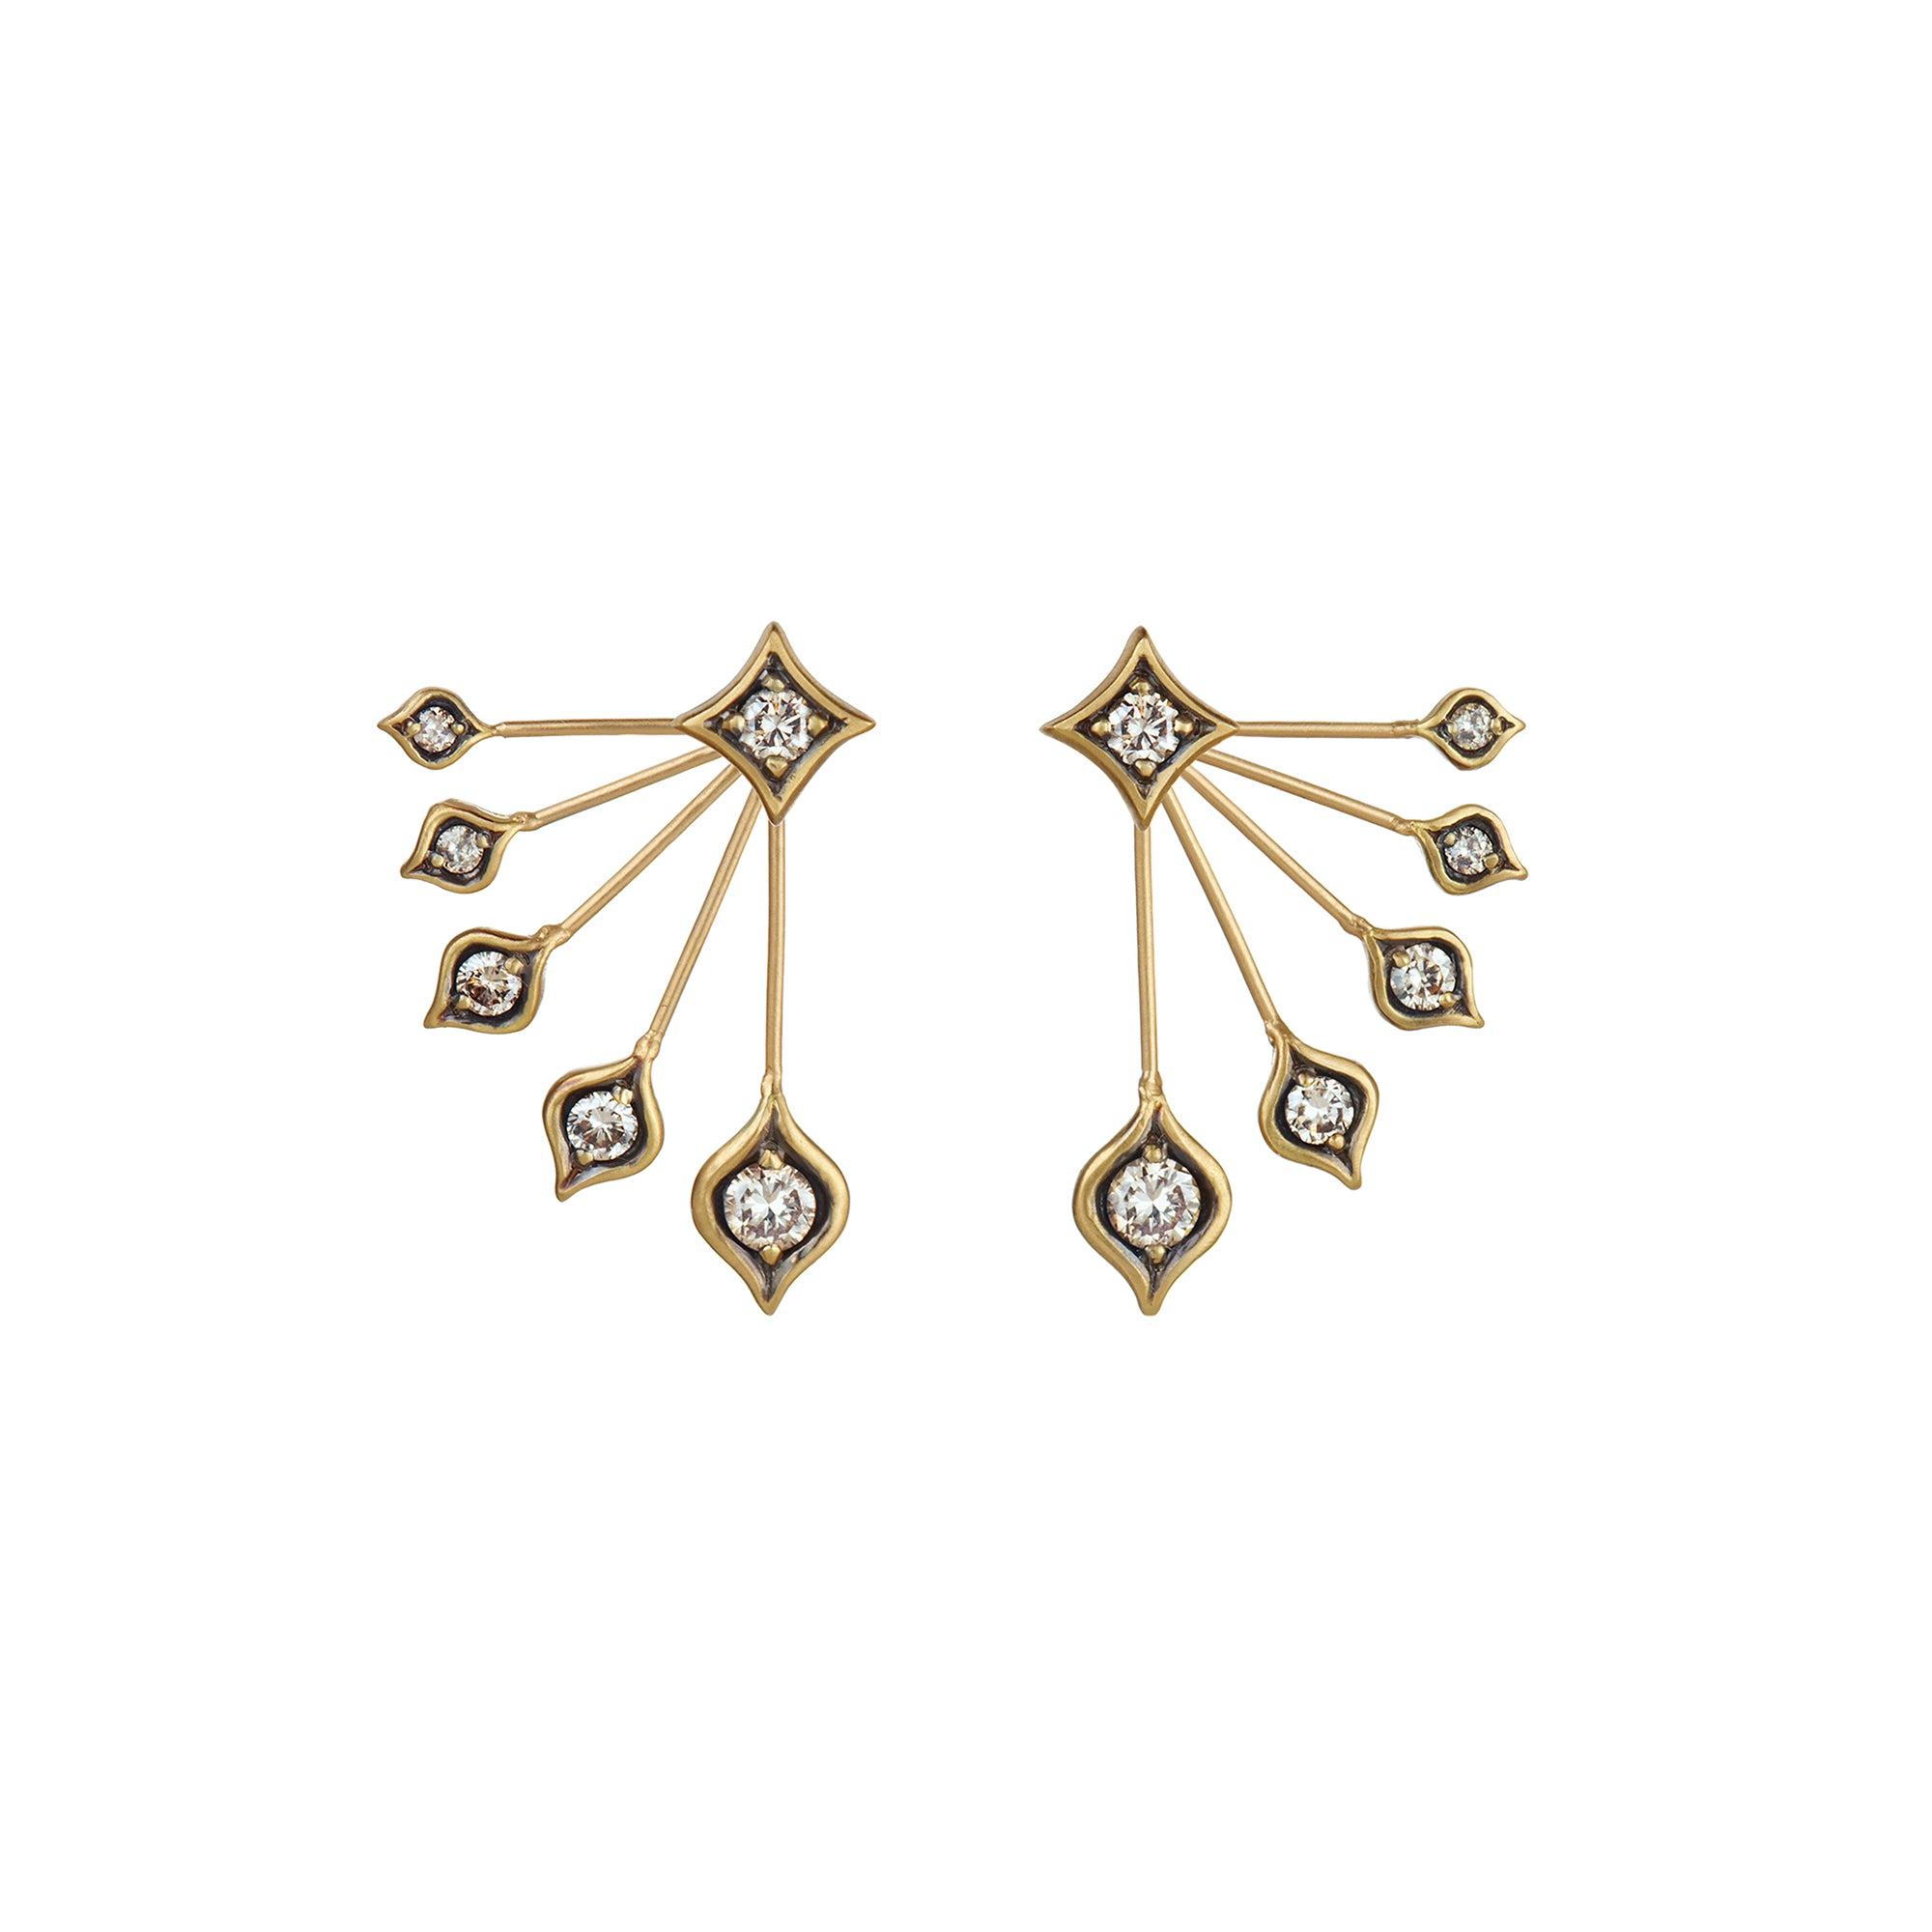 Gold White Diamond Peacock Stud Earrings by Anahita for Broken English Jewelry